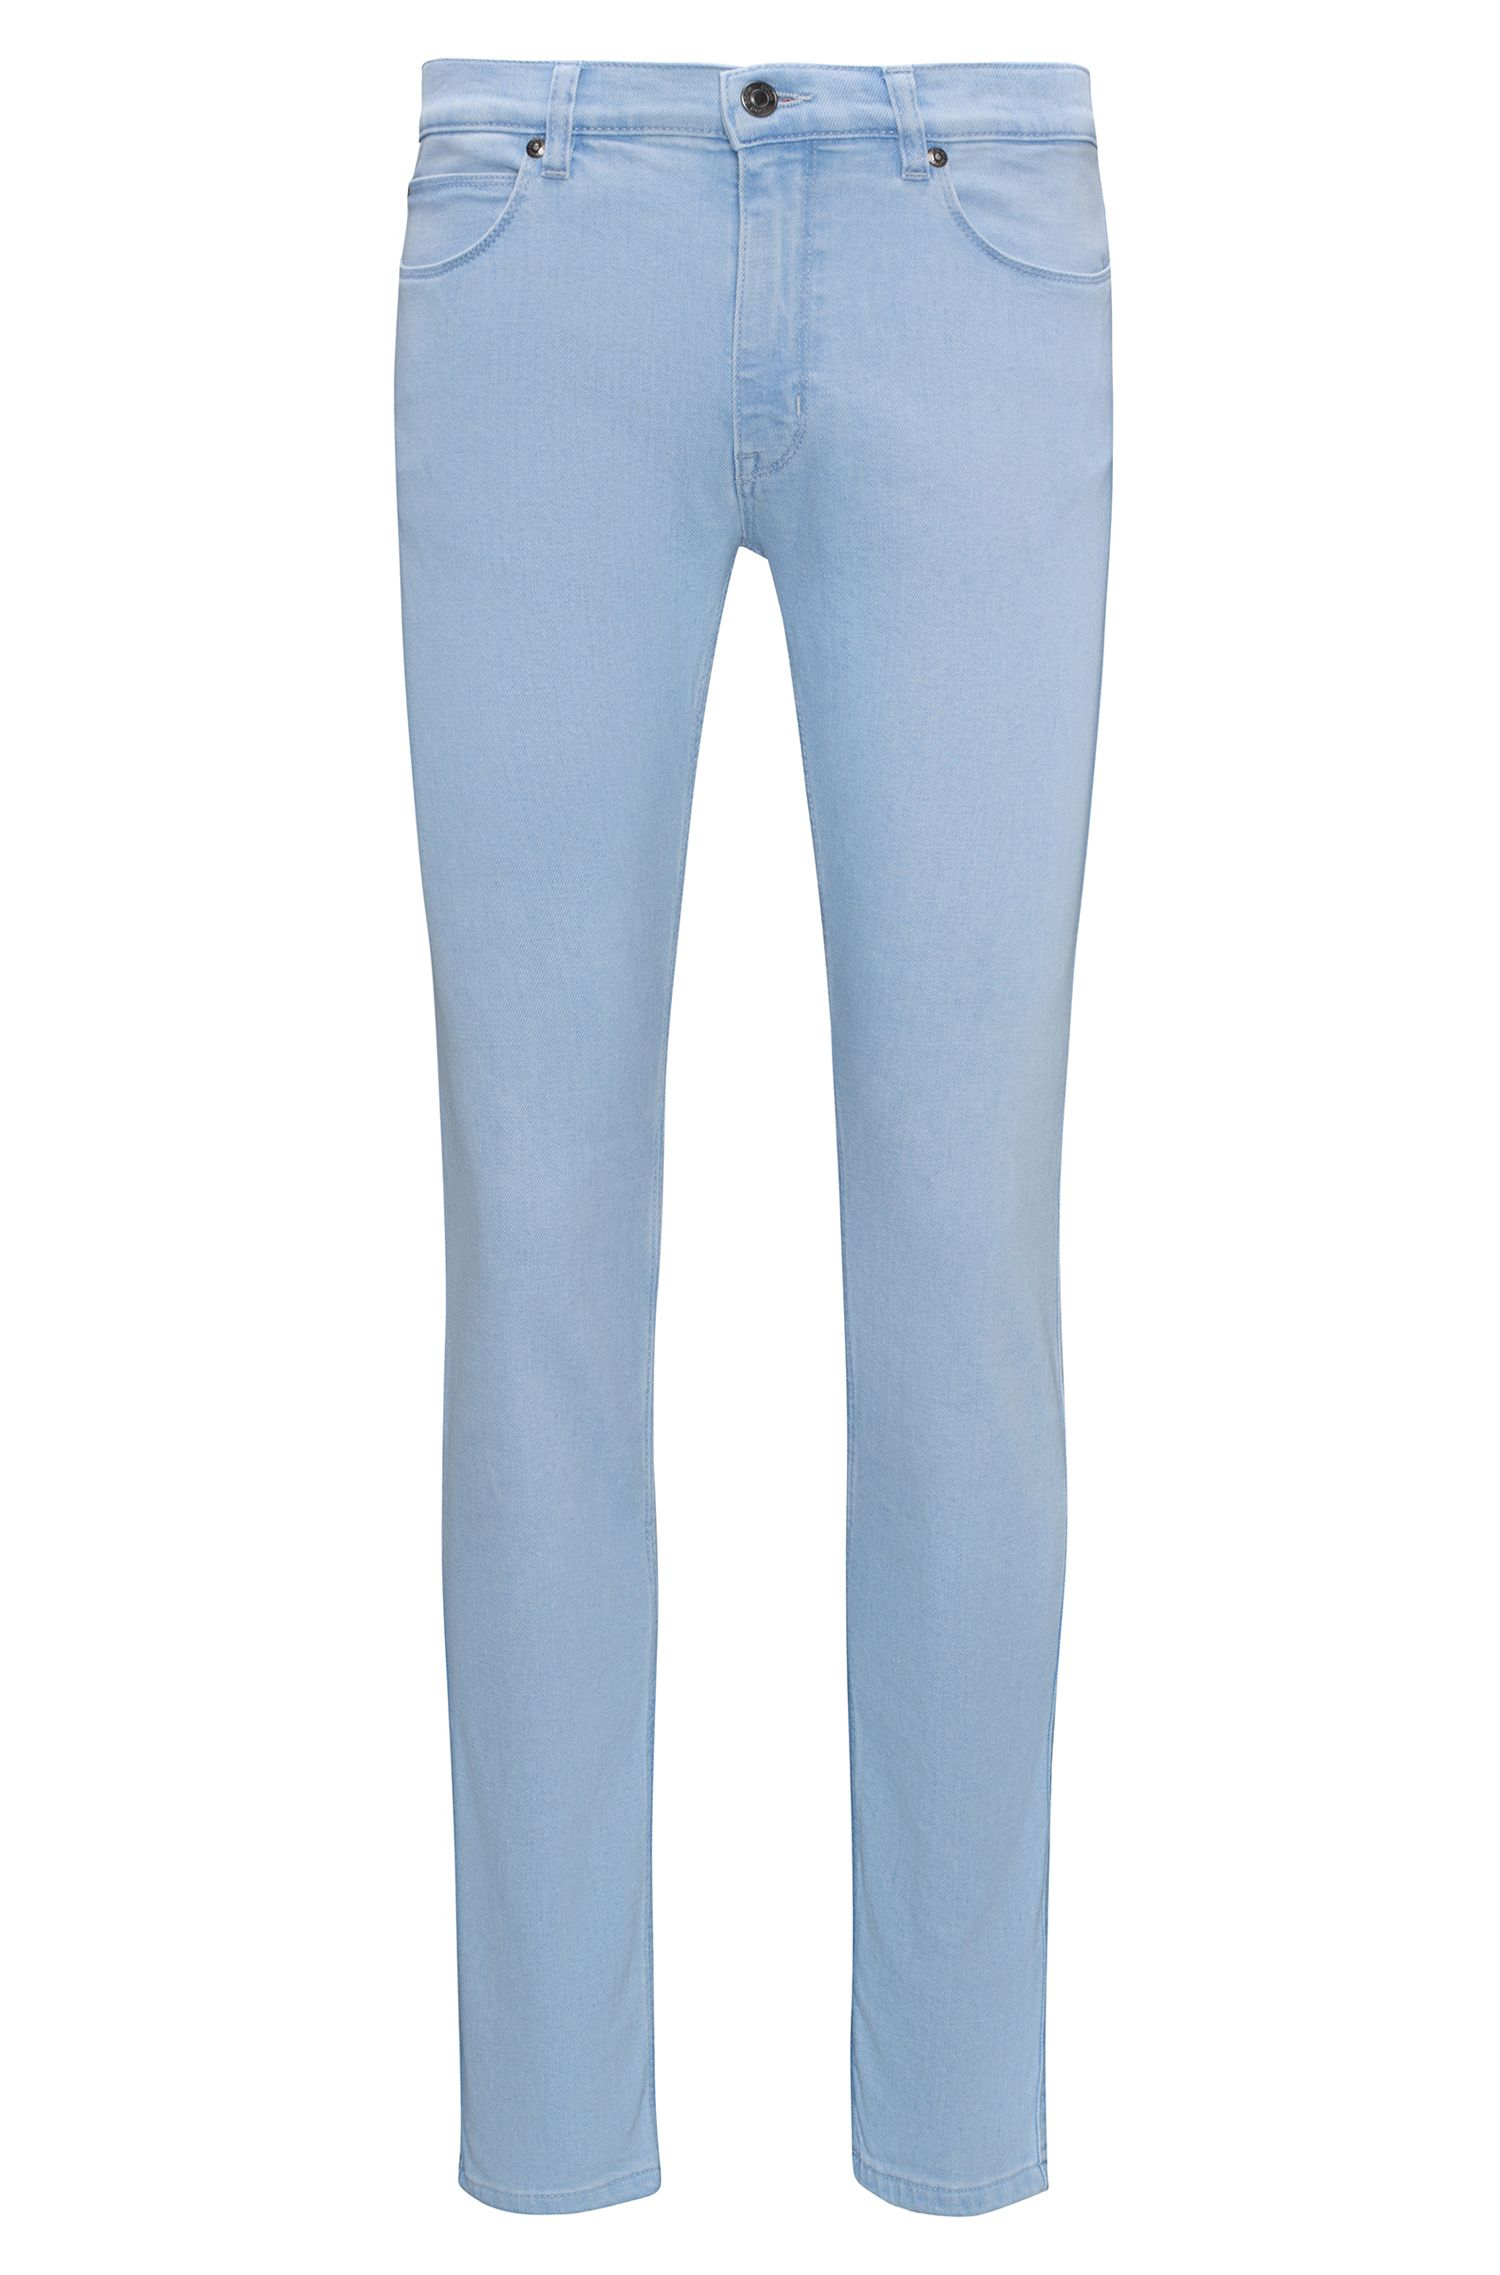 Jean Skinny Fit en denim stretch bleu clair